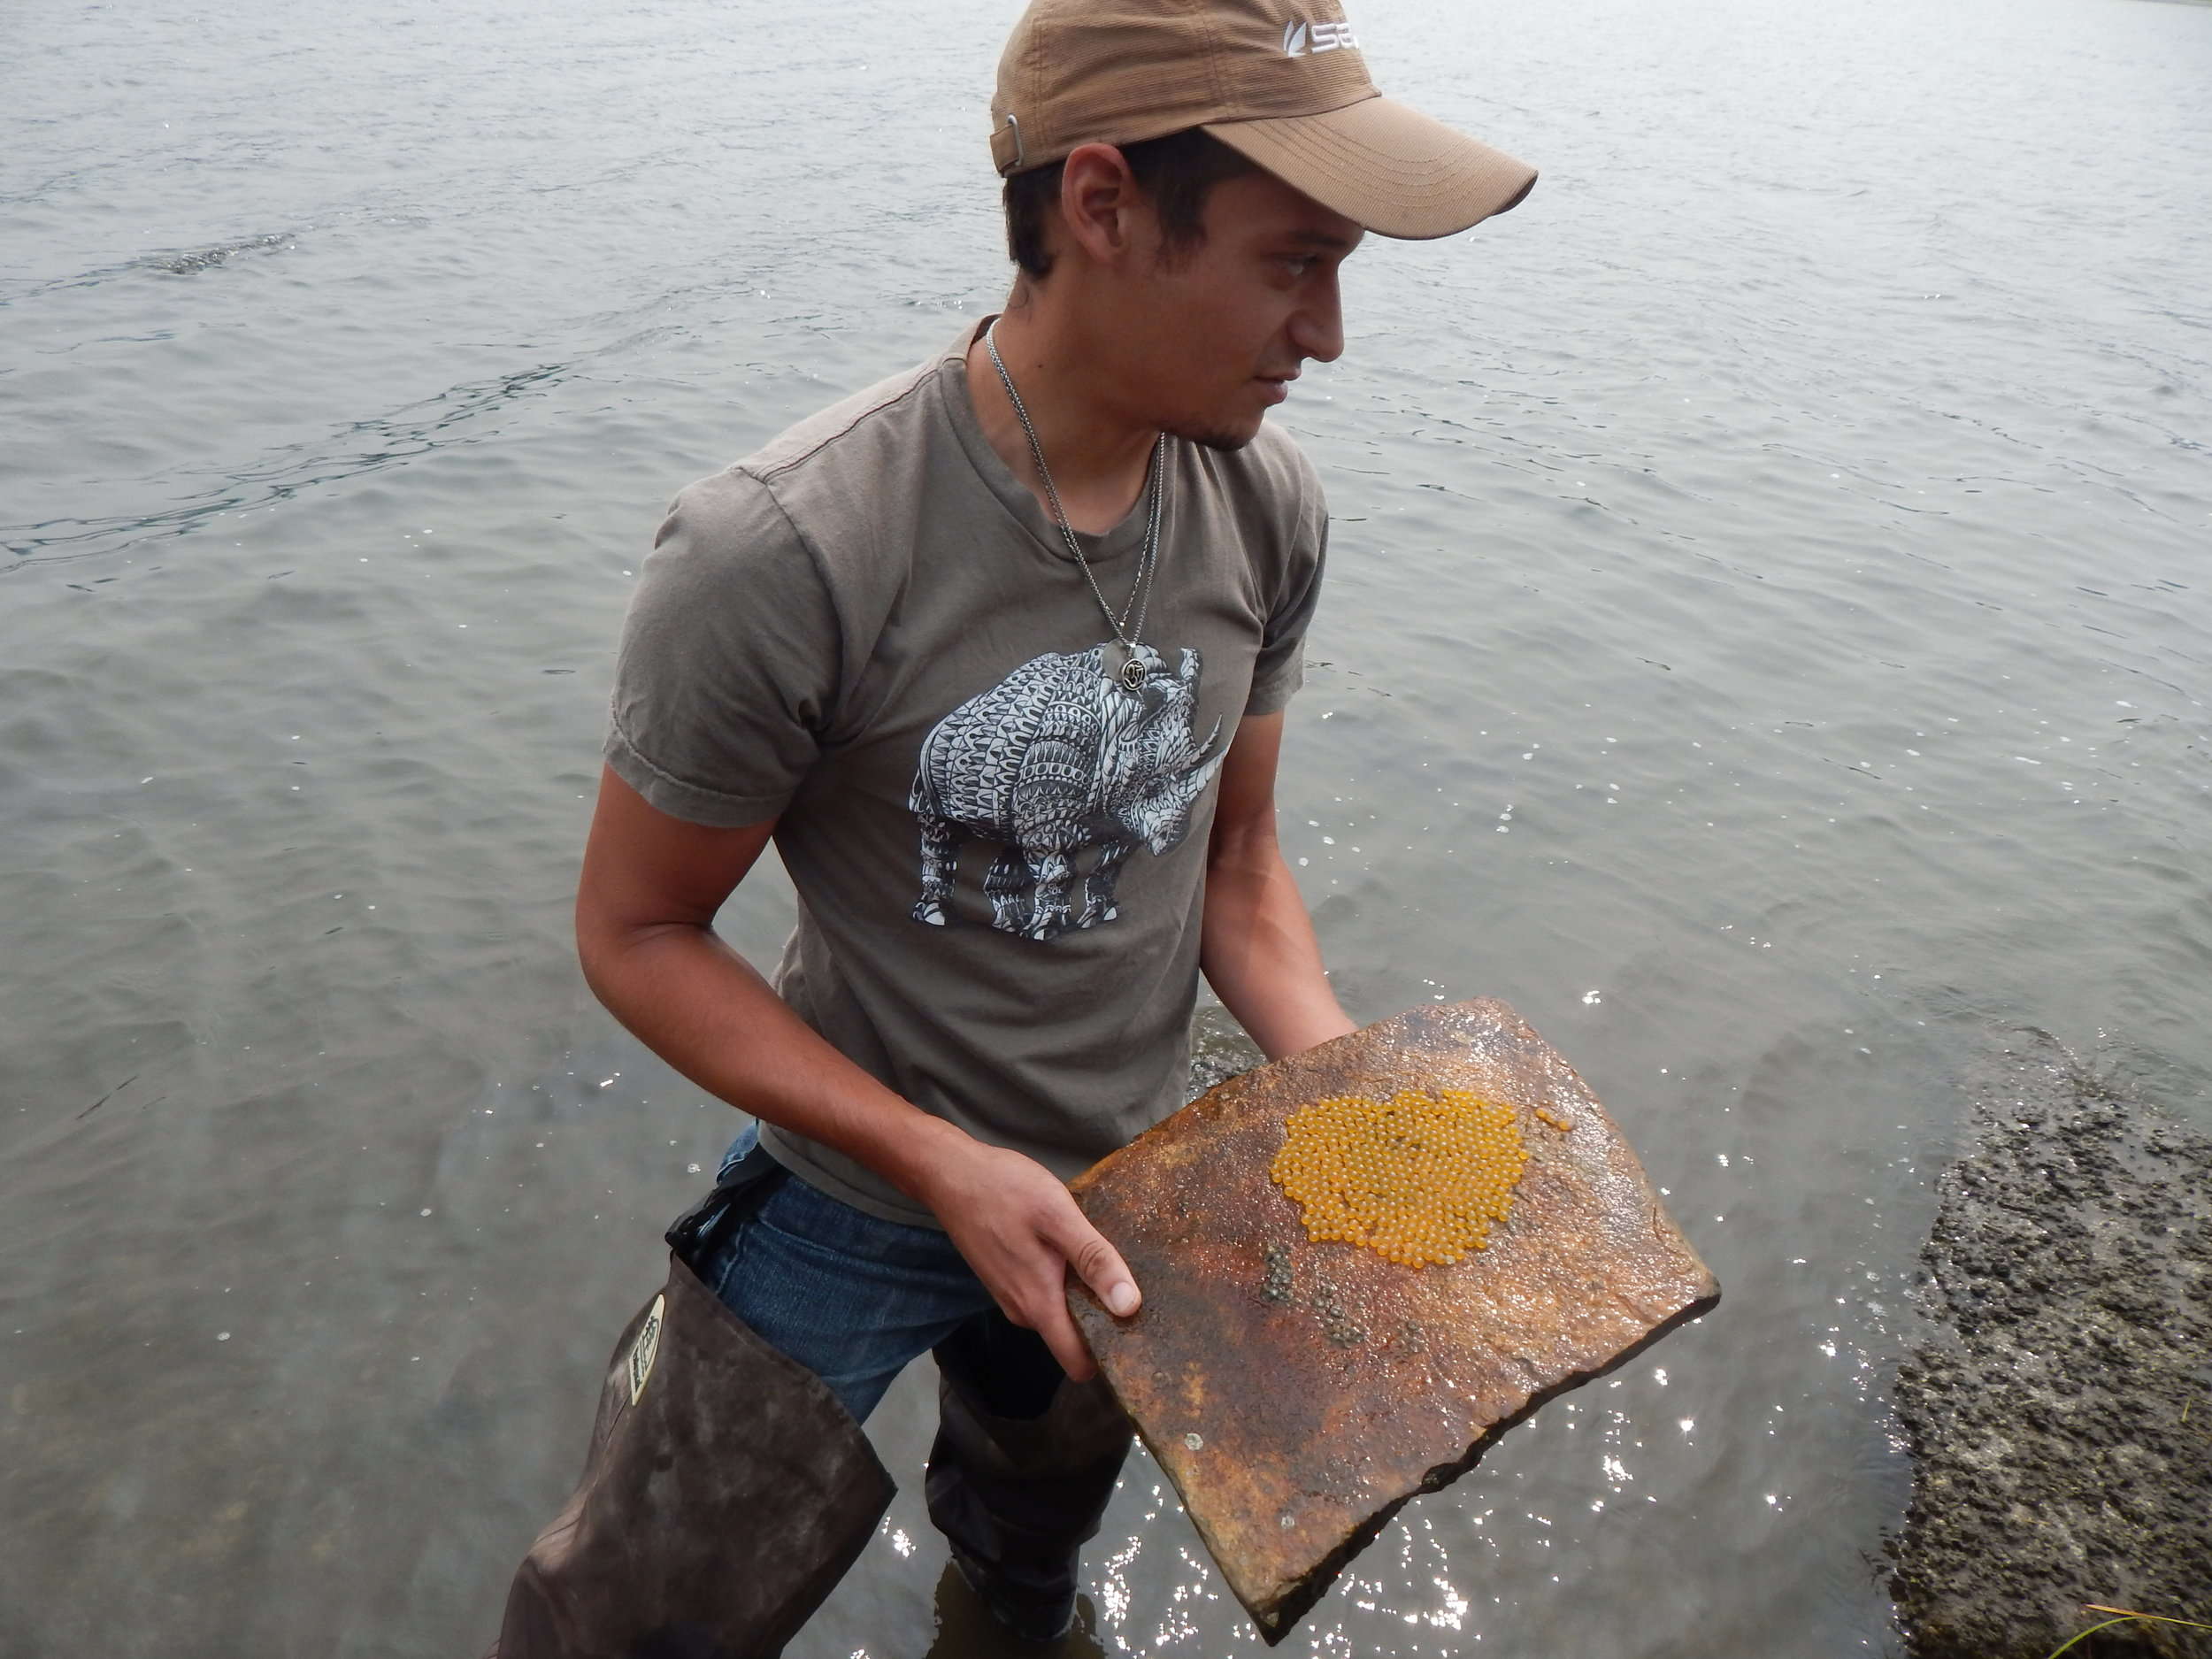 Holding a tile with plainfin midshipman eggs at an intertidal zone in British Columbia, Canada (photo credit: Shyamal Bose)